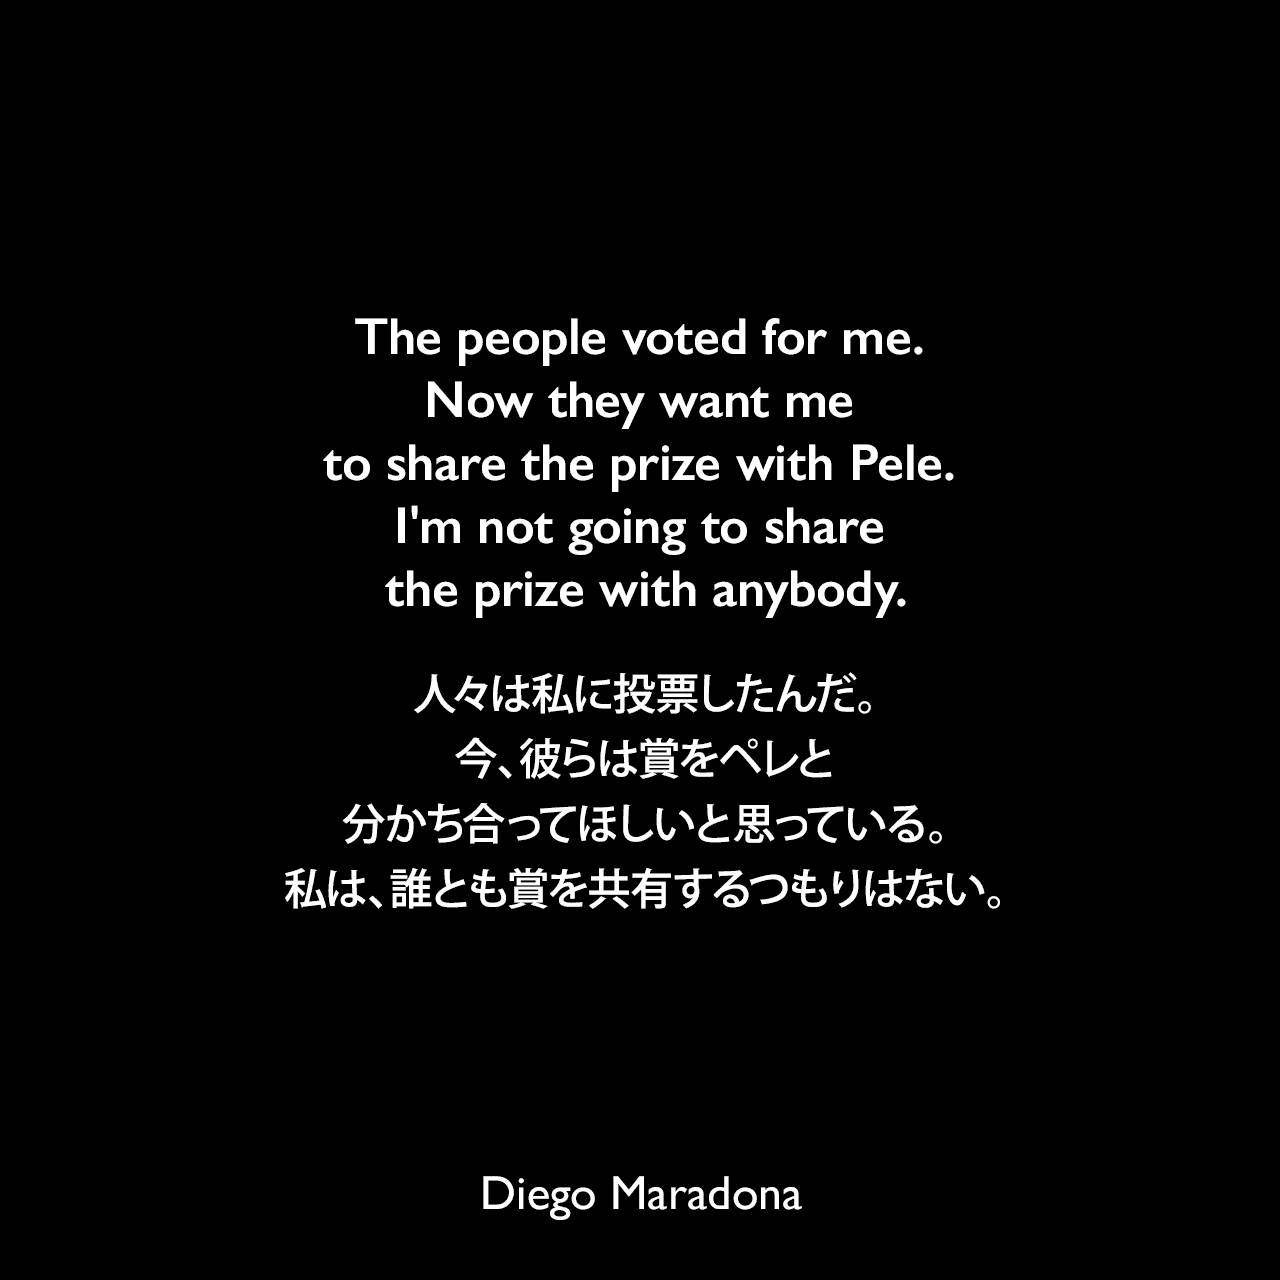 The people voted for me. Now they want me to share the prize with Pele. I'm not going to share the prize with anybody.人々は私に投票したんだ。今、彼らは賞をペレと分かち合ってほしいと思っている。私は、誰とも賞を共有するつもりはない。Diego Maradona